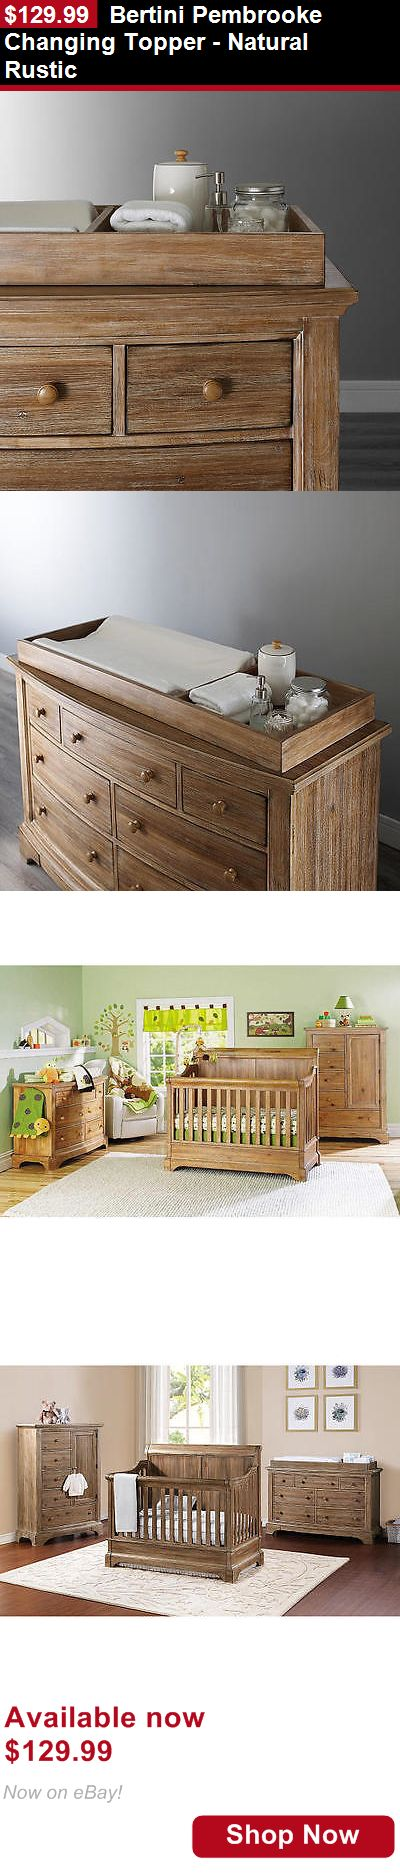 Other Nursery Furniture: Bertini Pembrooke Changing Topper - Natural Rustic BUY IT NOW ONLY: $129.99